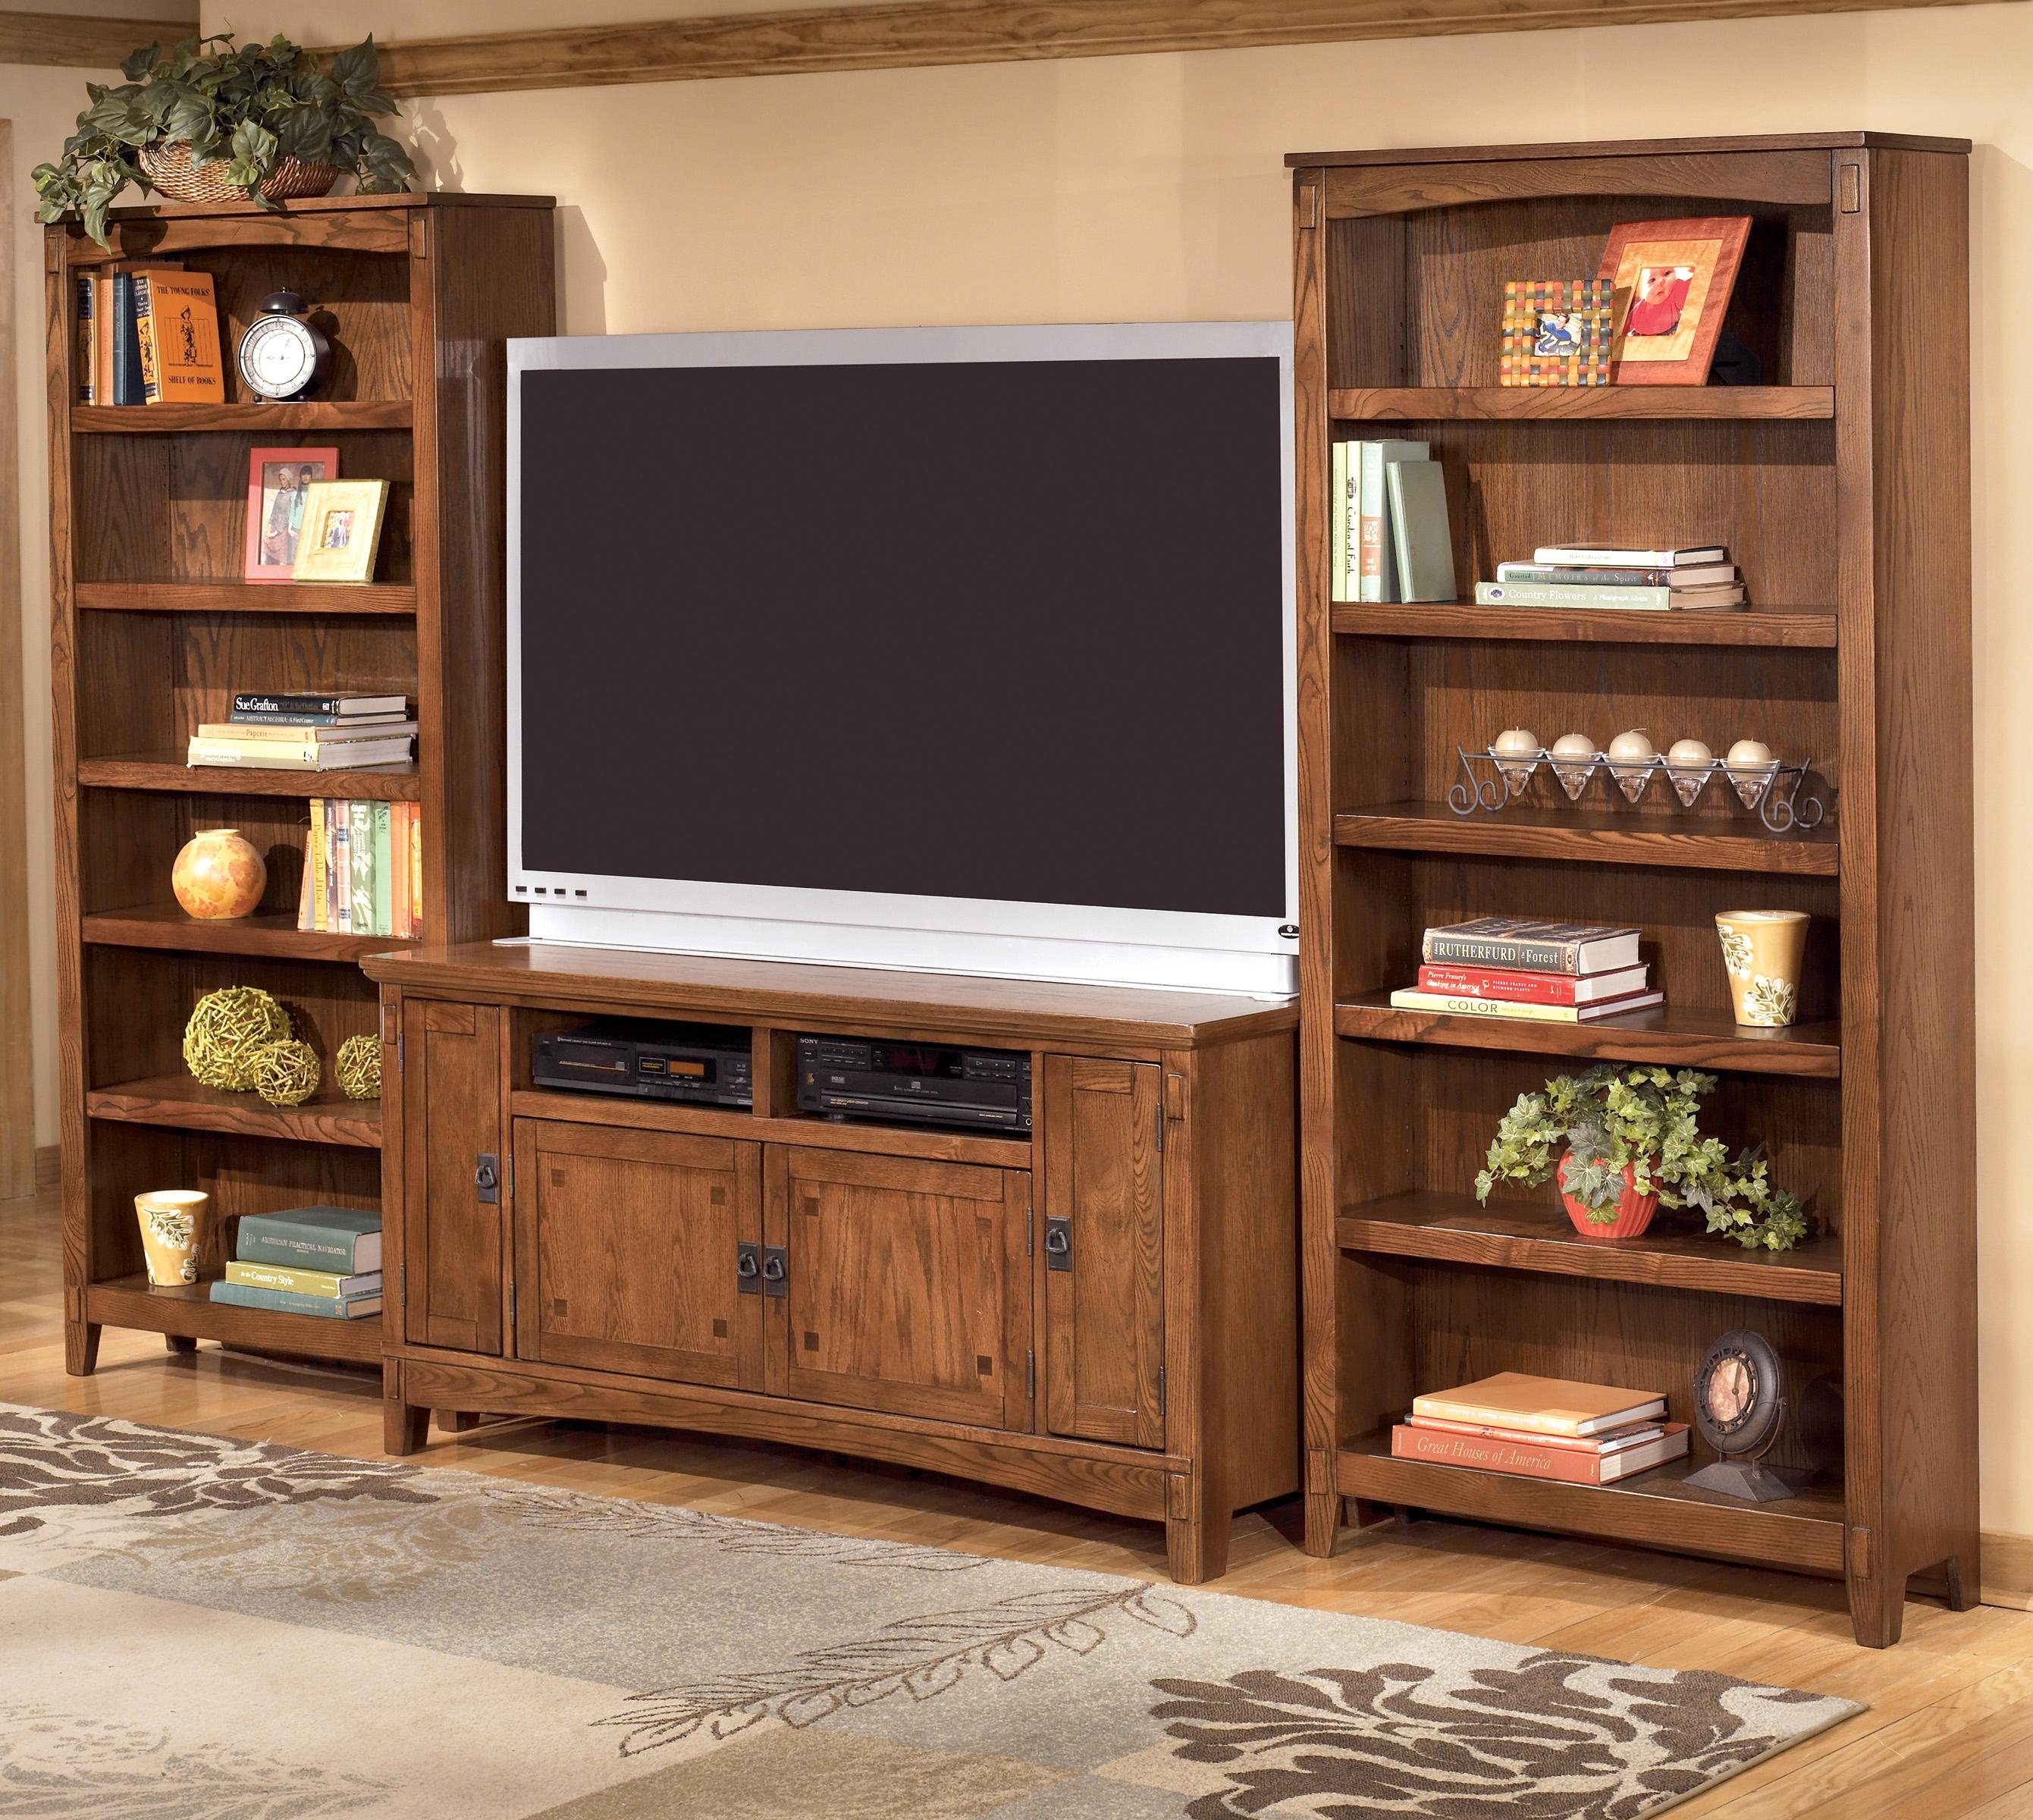 Ashley Furniture Cross Island 60 Inch Tv Stand 2 Large Bookcases Regarding Tv Cabinet And Bookcase (Image 1 of 15)